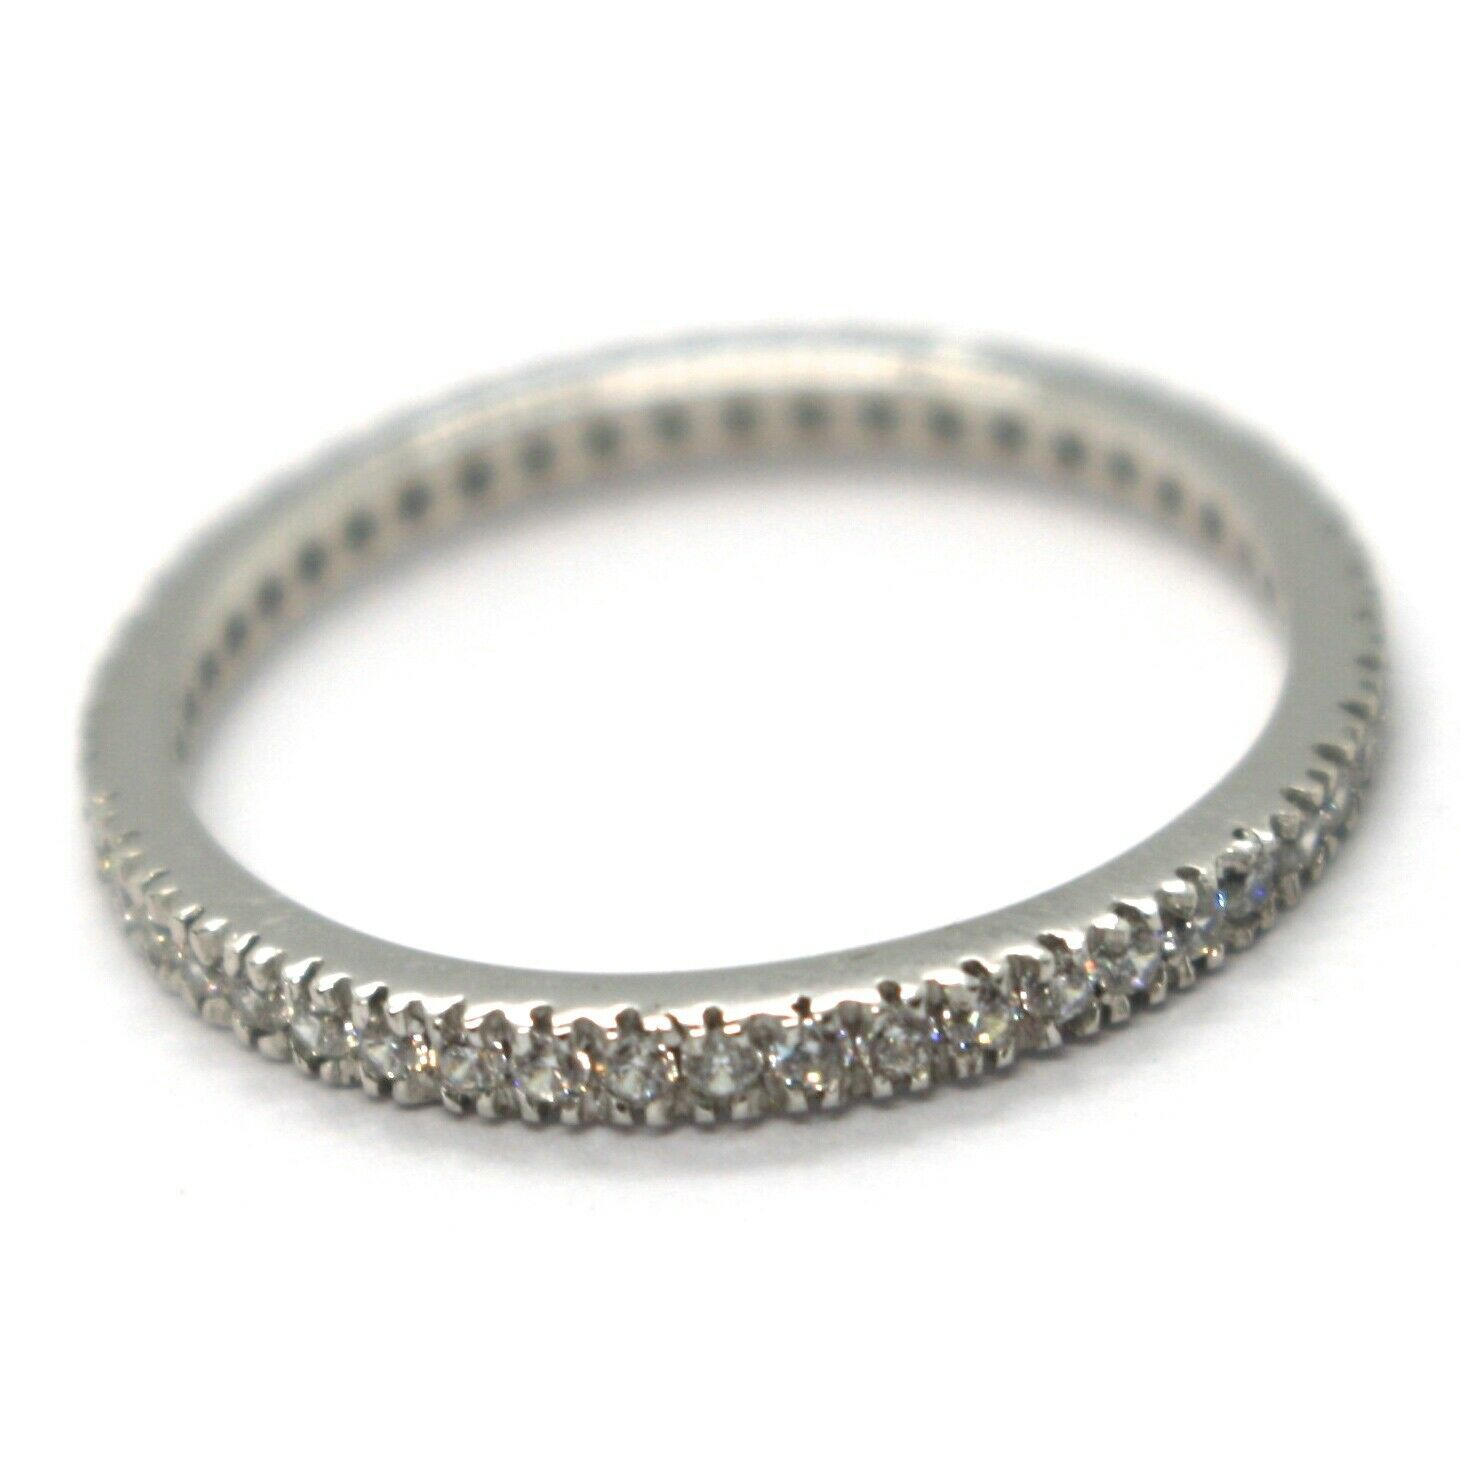 White Gold Ring 750 18K, Eternity, 4 Tips, Thickness 2 mm, Zircon Cubic